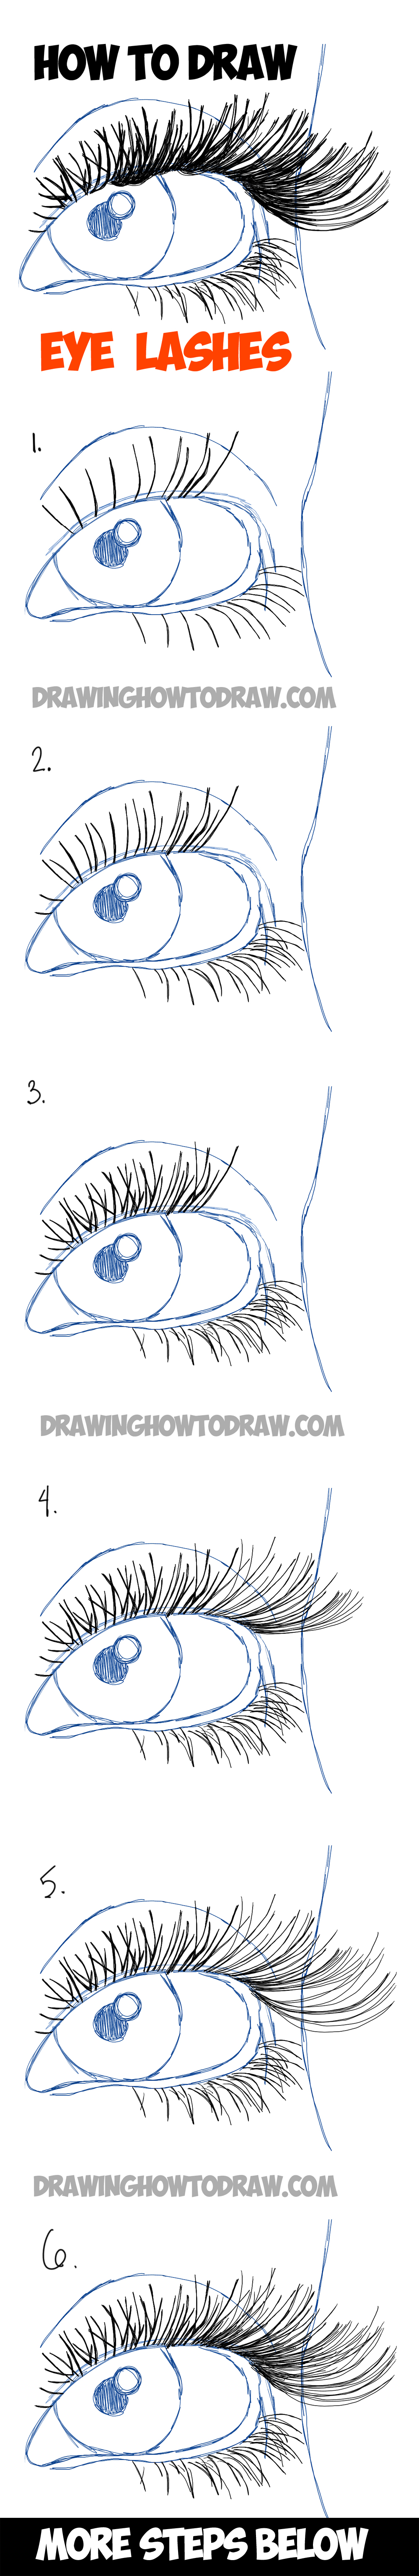 Learn How To Draw Eye Lashes With Step By Step Illustrated Tutorial How To  Draw Eye